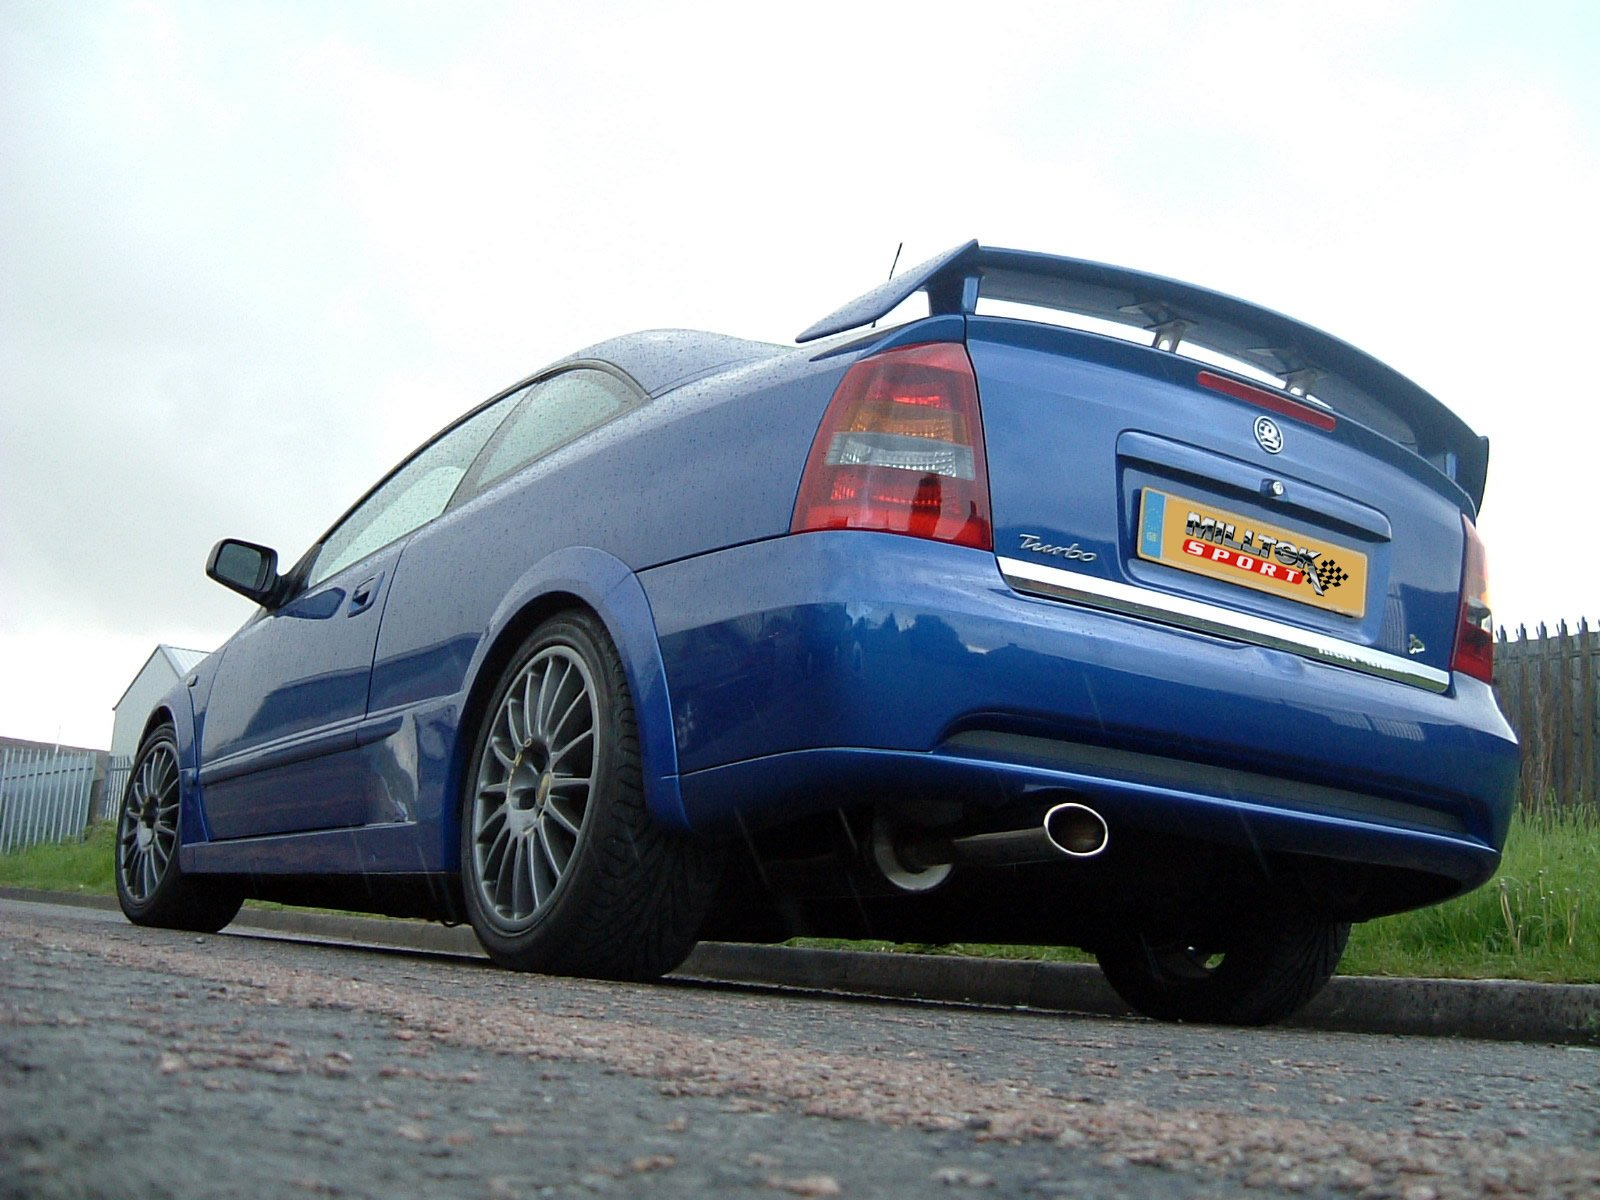 2002 Opel Astra g coupe – pictures, information and specs ...